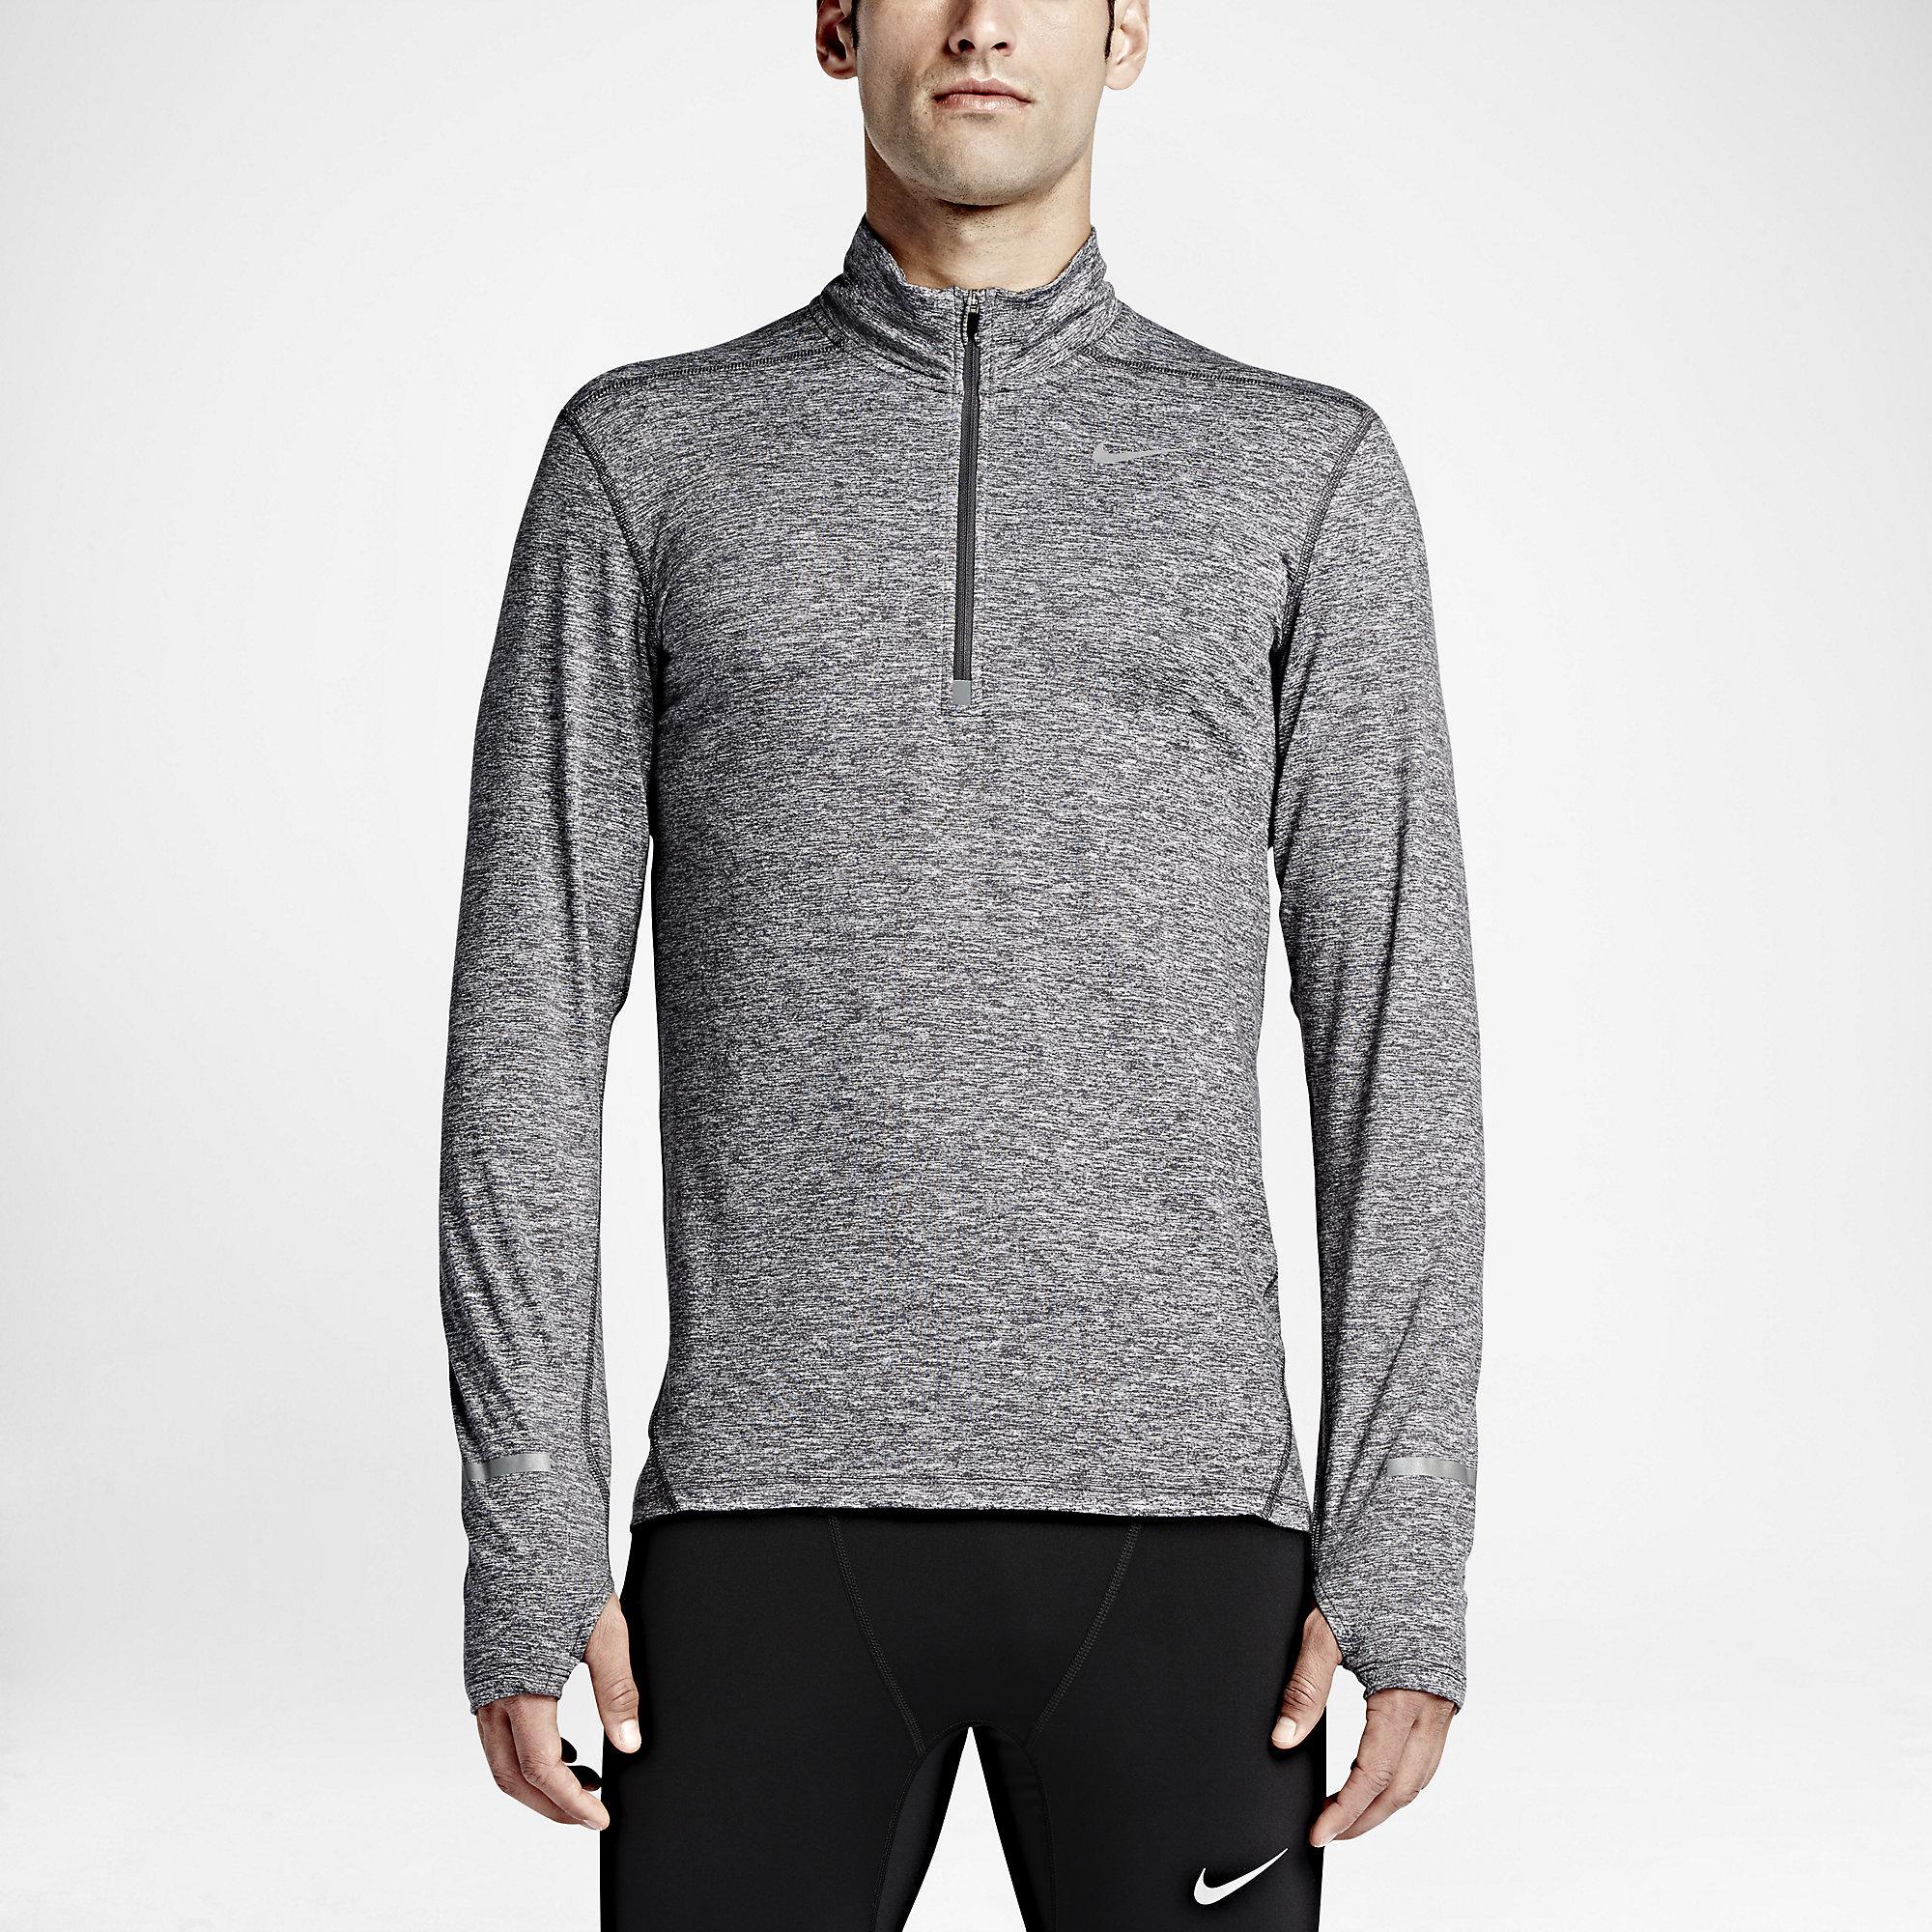 e6c6b8945e65 Nike Mens Dri-FIT Element Half-Zip Top - Dark Grey - Tennisnuts.com